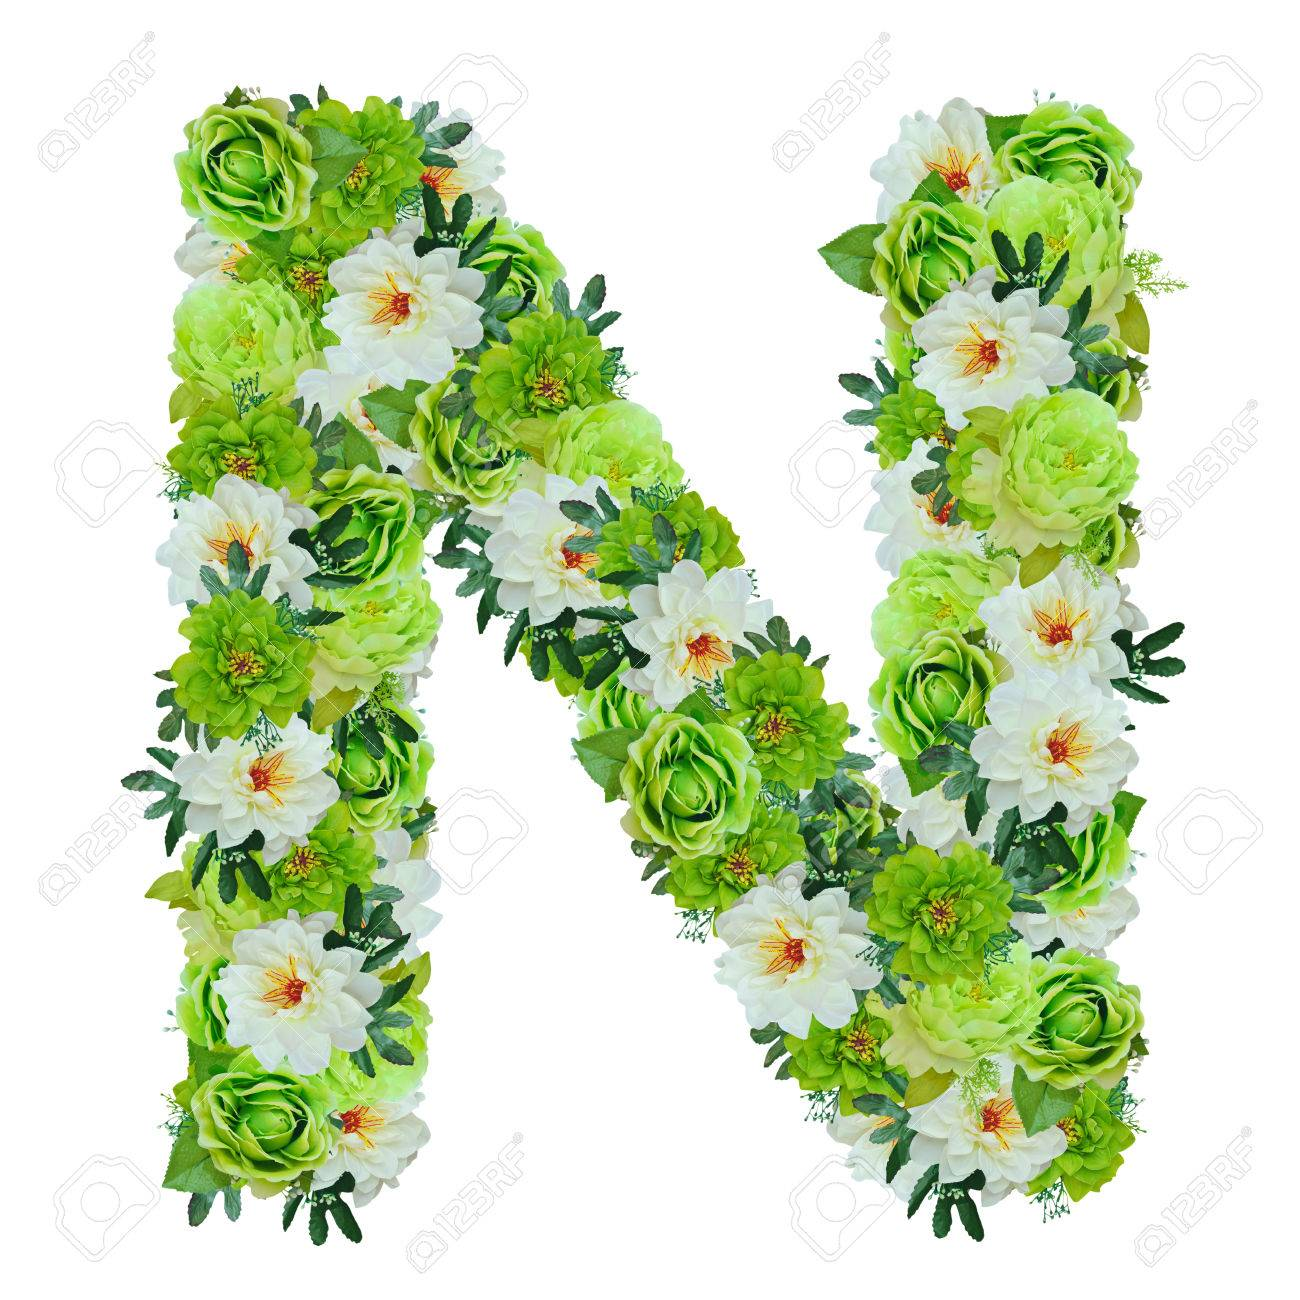 Letter N from green and white flowers isolated on white with working path - 82156231